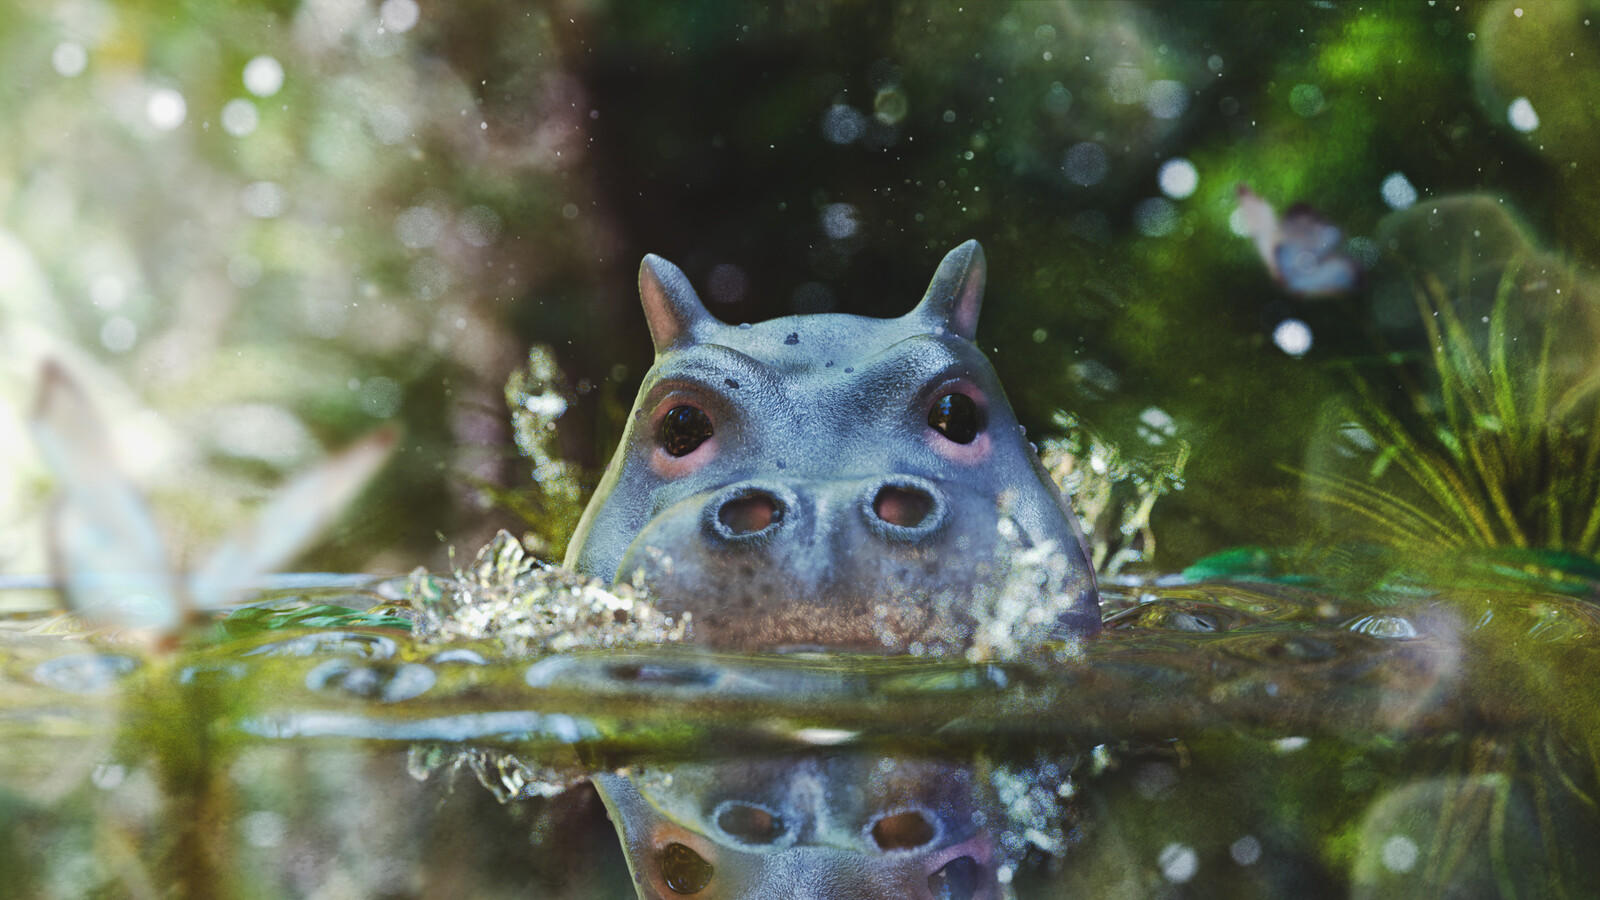 Baby Hippo having a swim!